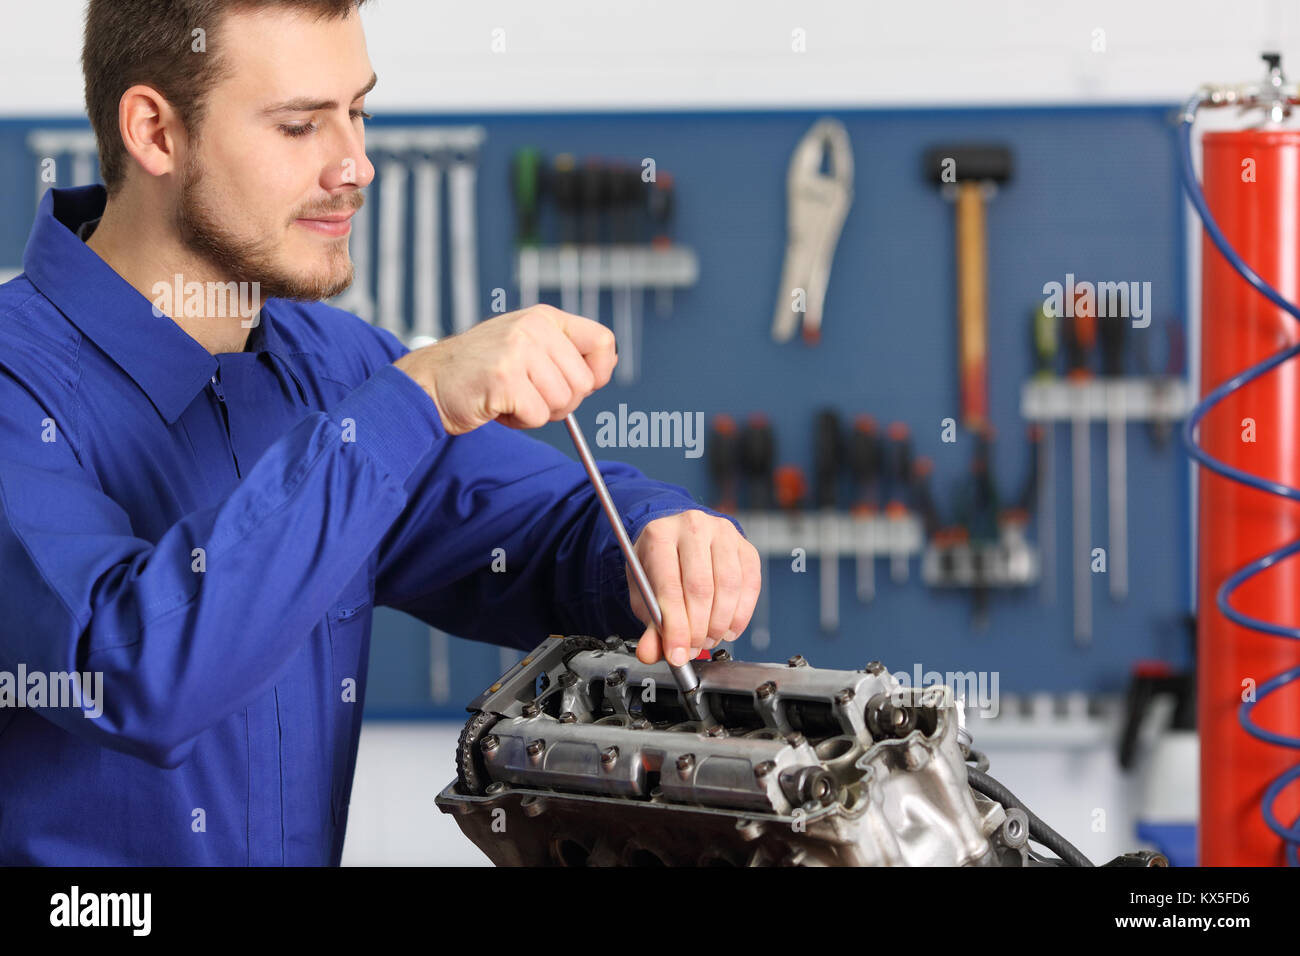 Satisfied mechanic repairing a motorbike engine in a mechanical workshop - Stock Image